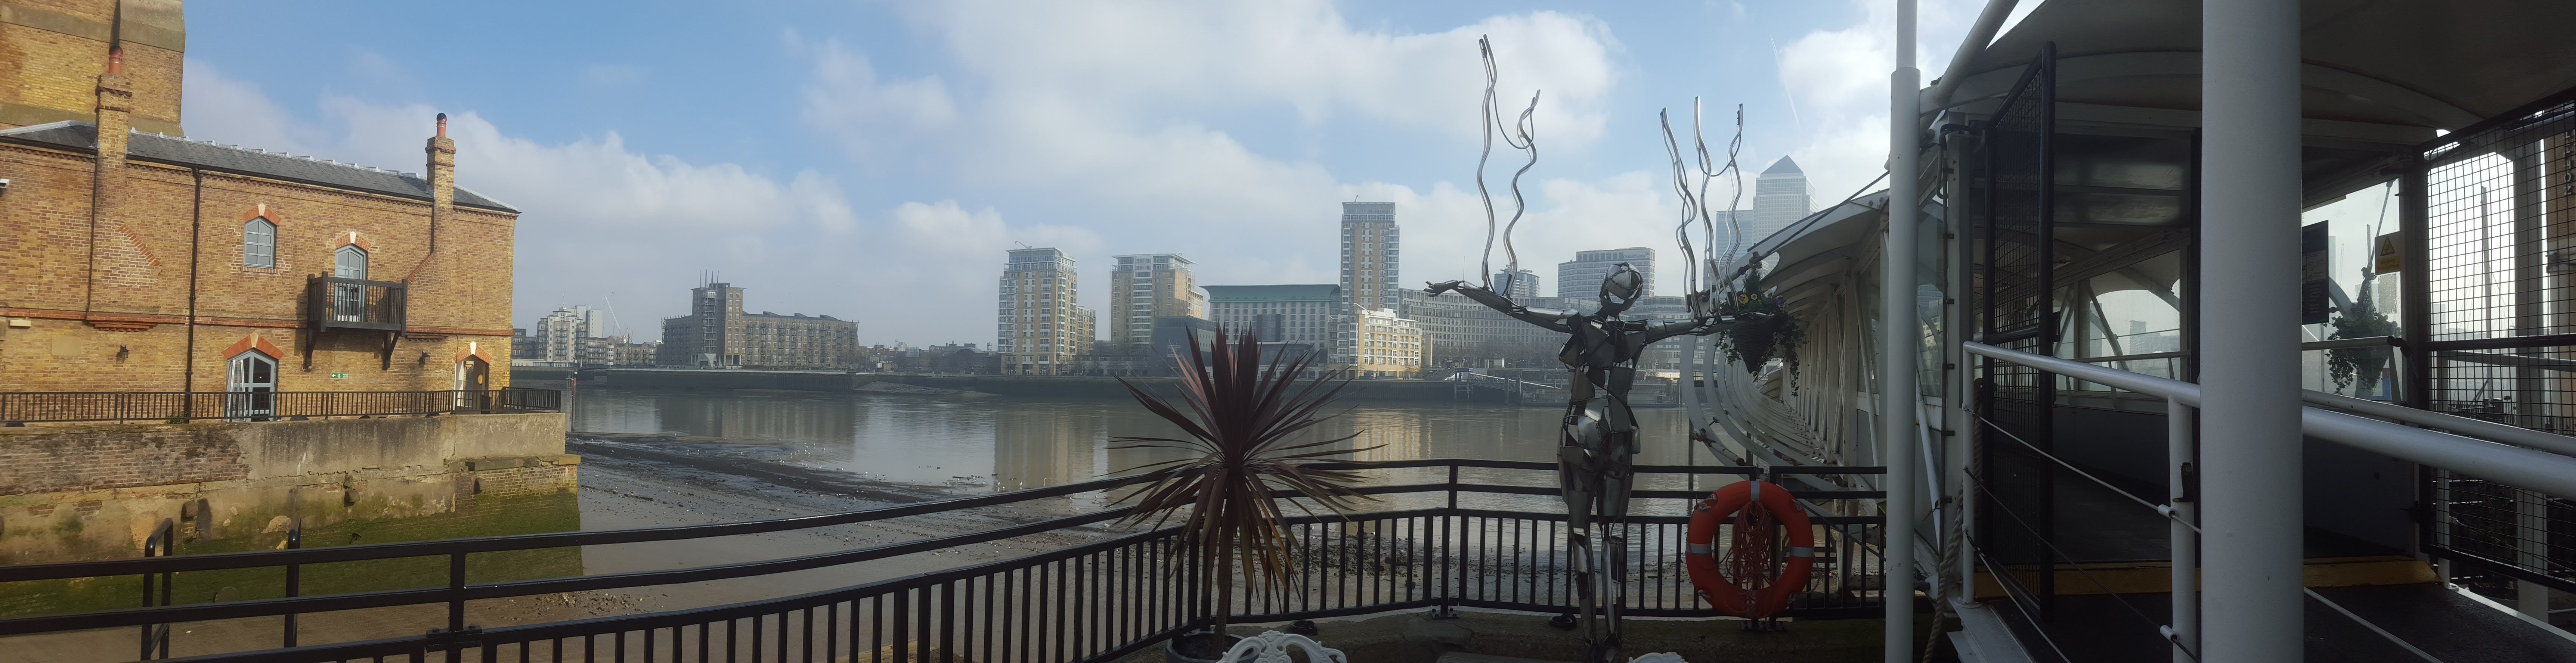 Free stock photo of building, london, river, statue